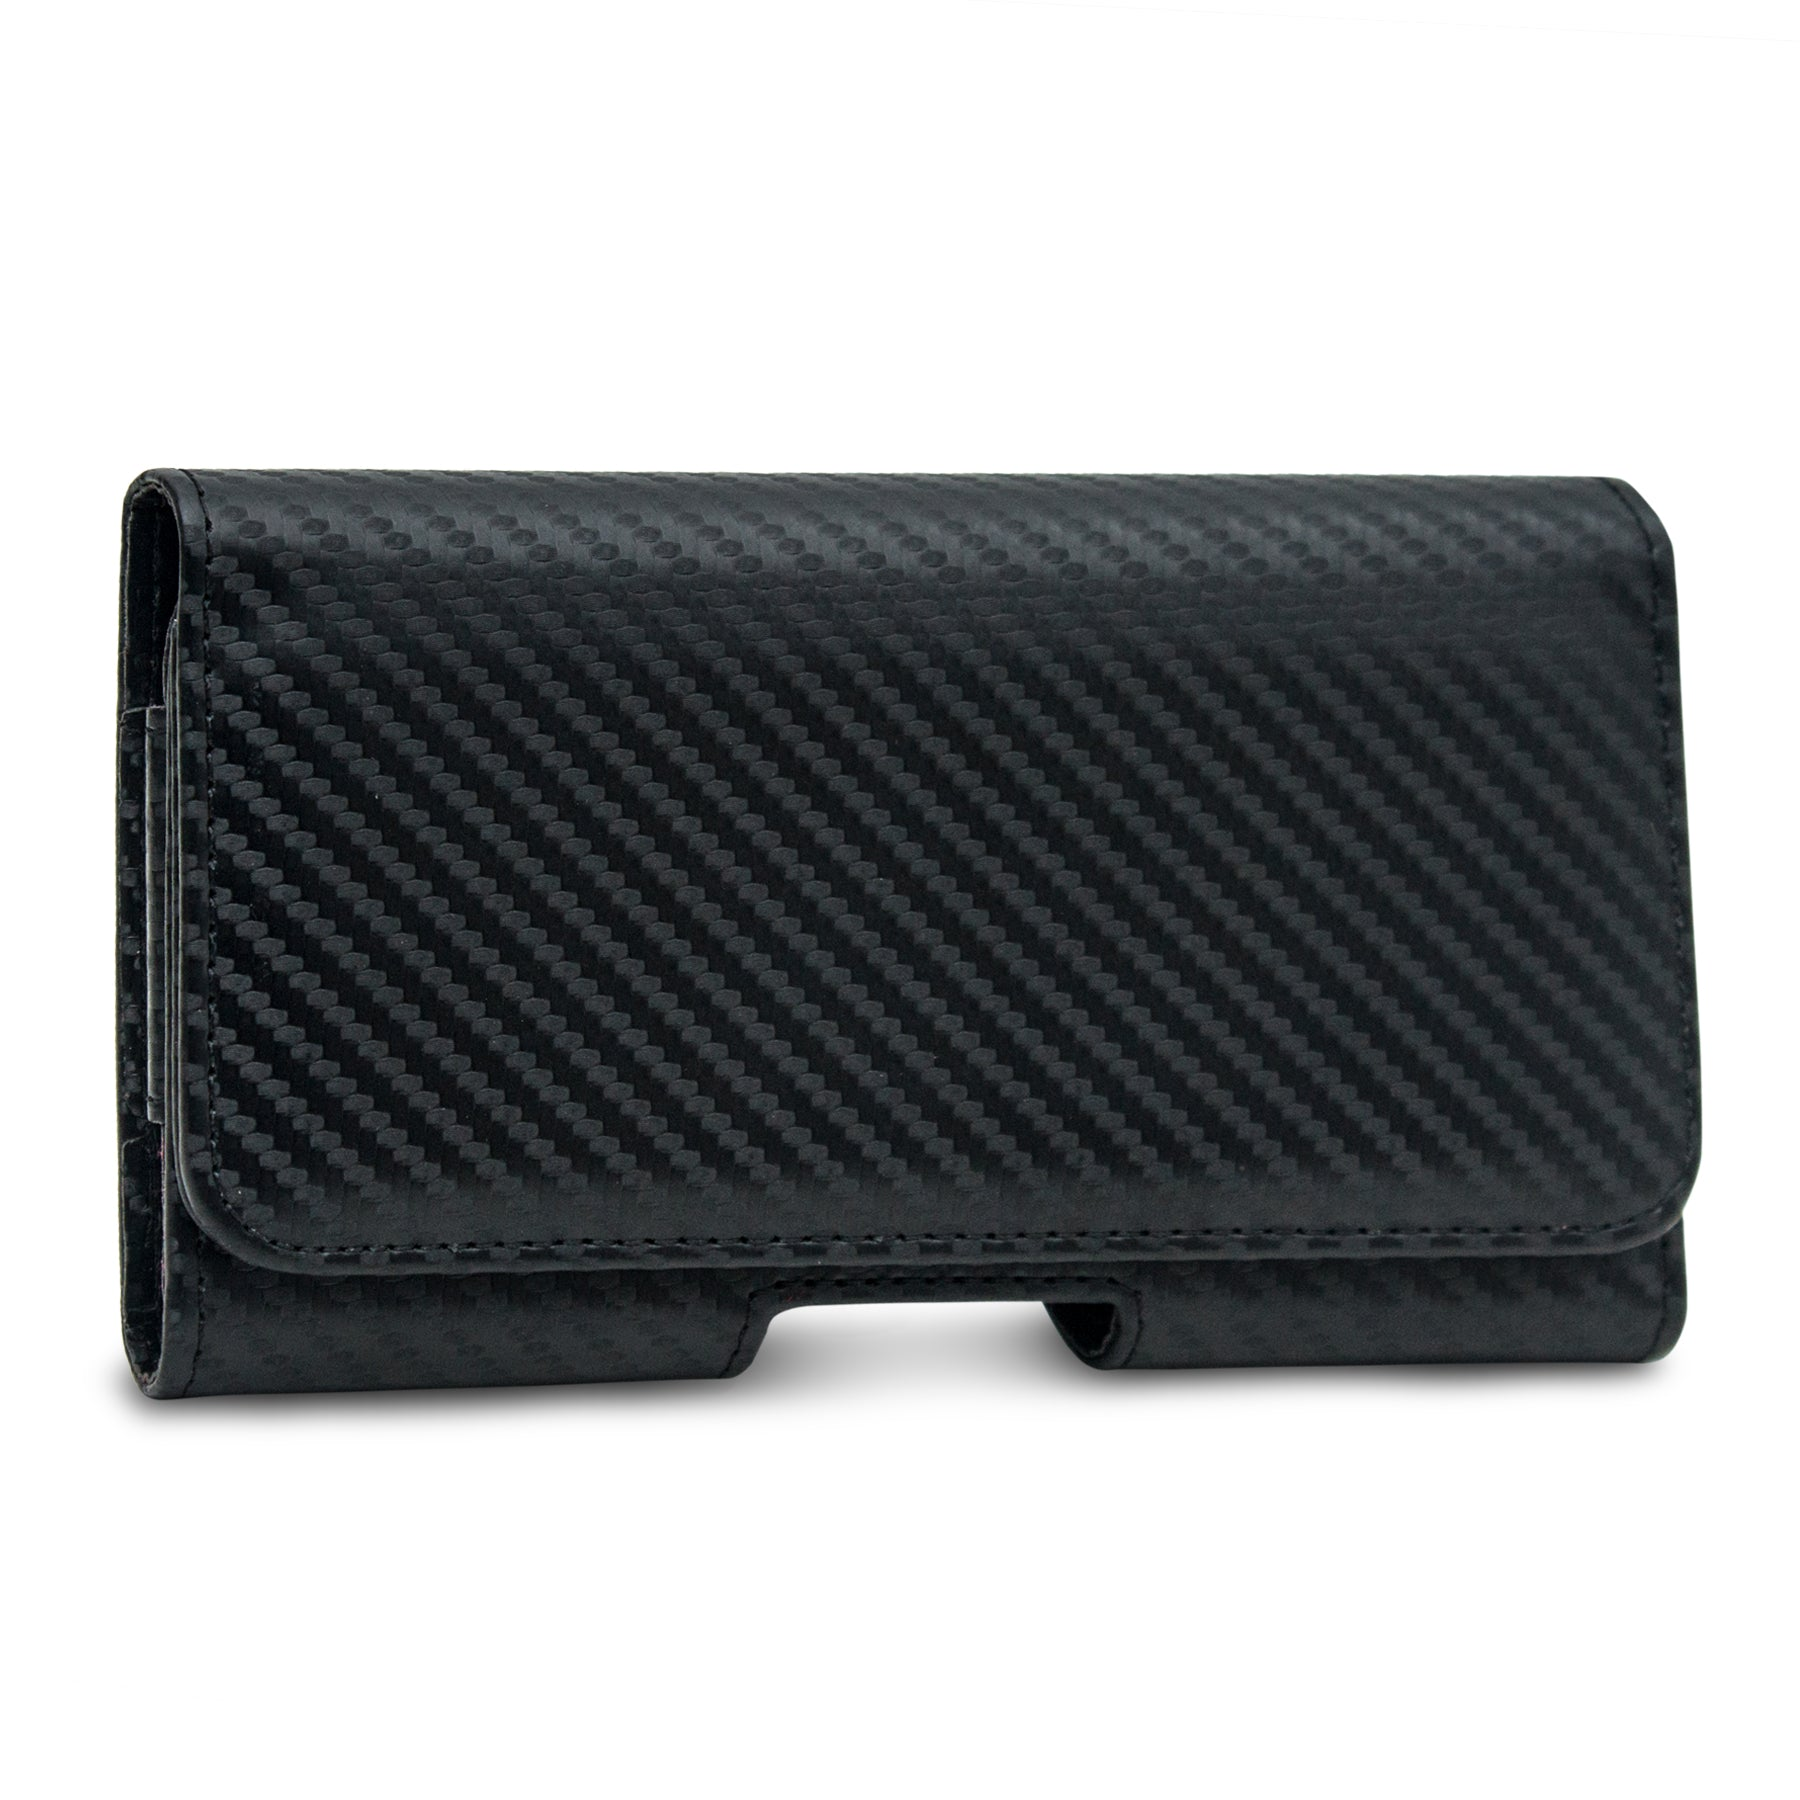 Phone Sleeve Pouch with Magnetic Lock for 4 Inch to 5 Inch Phones (Carbon Fiber Black)